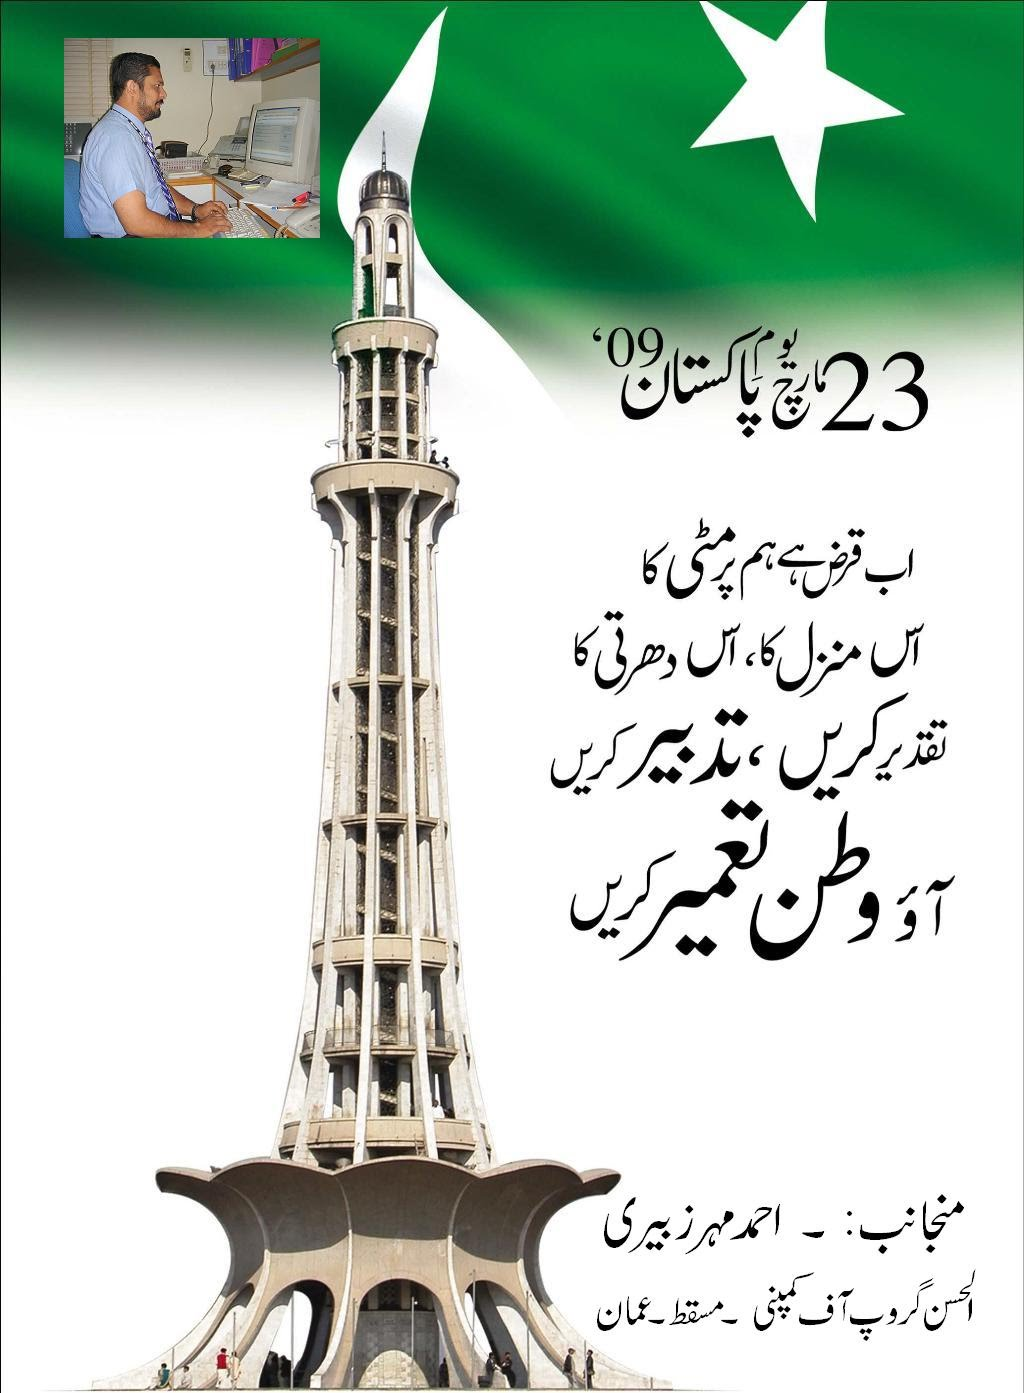 pakistan day celebration essay in english Check out our top free essays on pakistan day celebration to help you write your own essay.